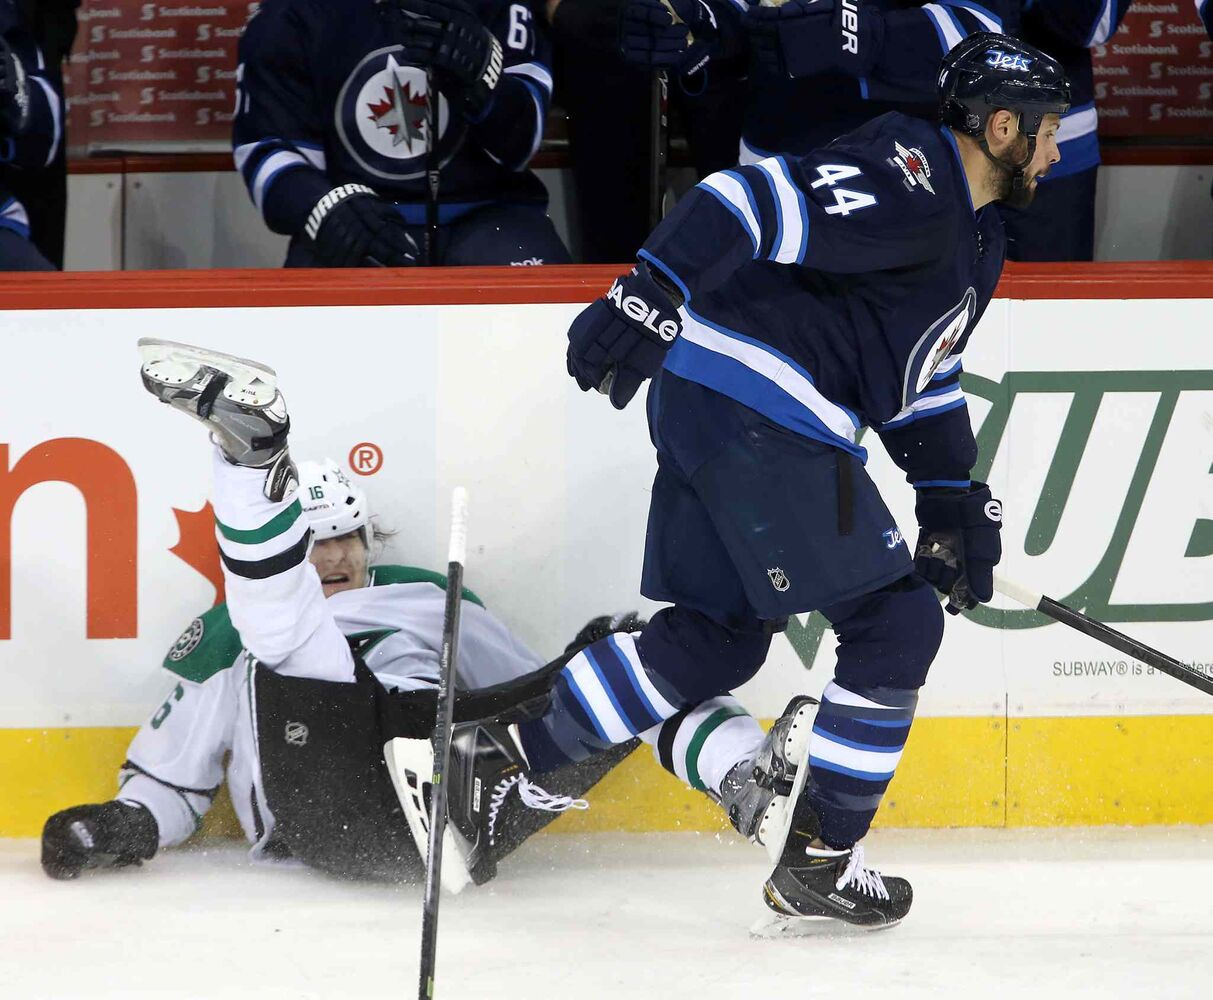 Dallas Stars forward Ryan Garbutt is pasted into the boards by Winnipeg Jets defenceman Zach Bogosian in the first period.